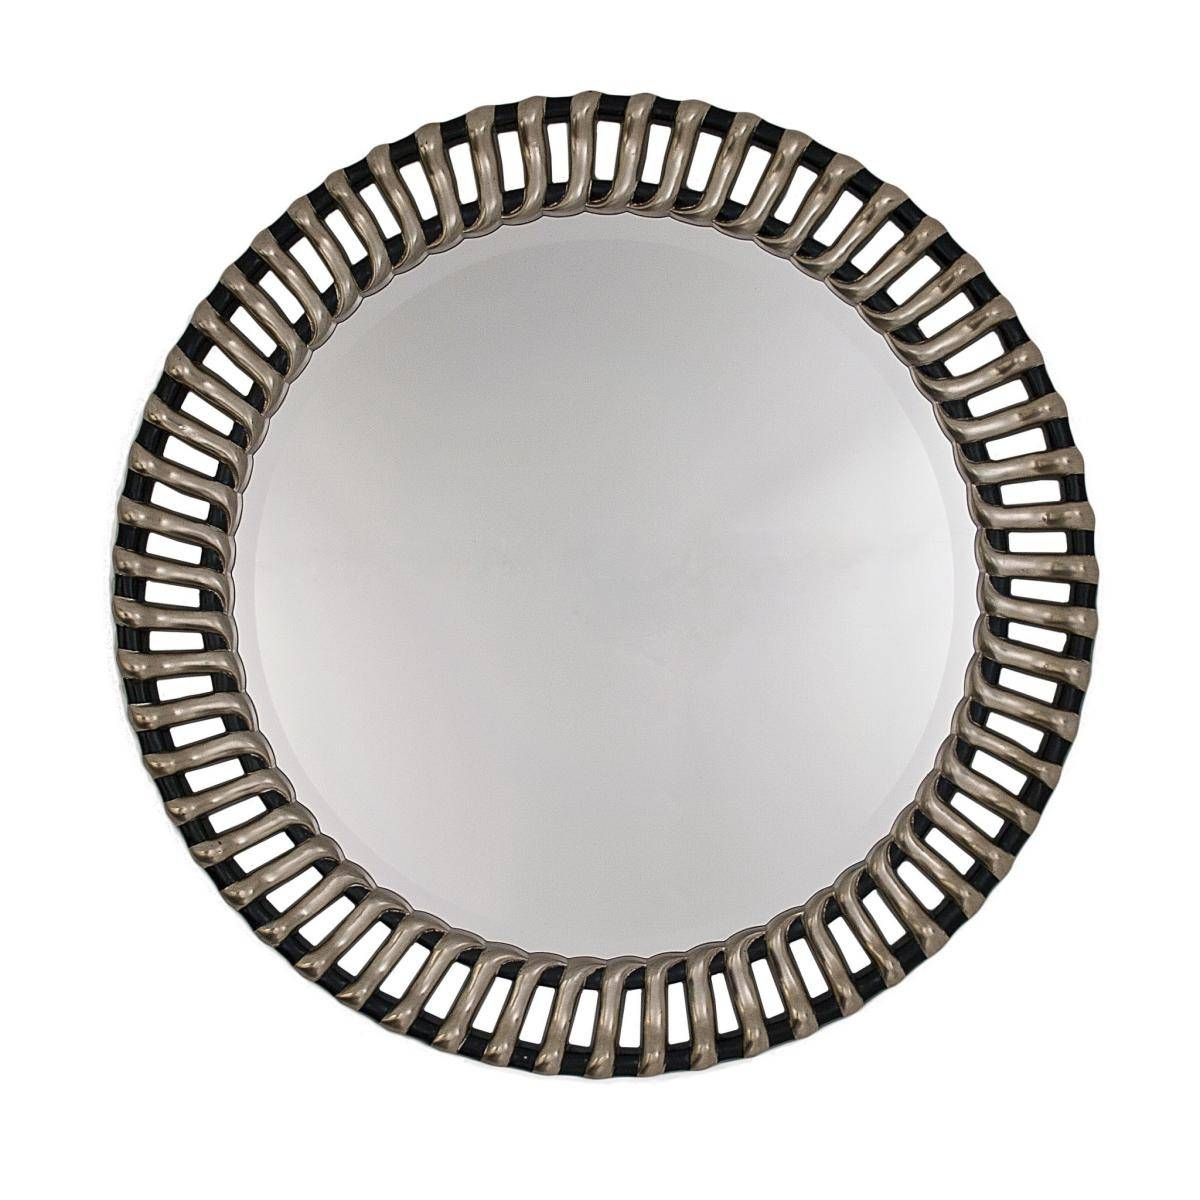 Round Ribbed Framed Silver And Black Bevelled Wall Mirror regarding Silver Oval Mirrors (Image 18 of 25)